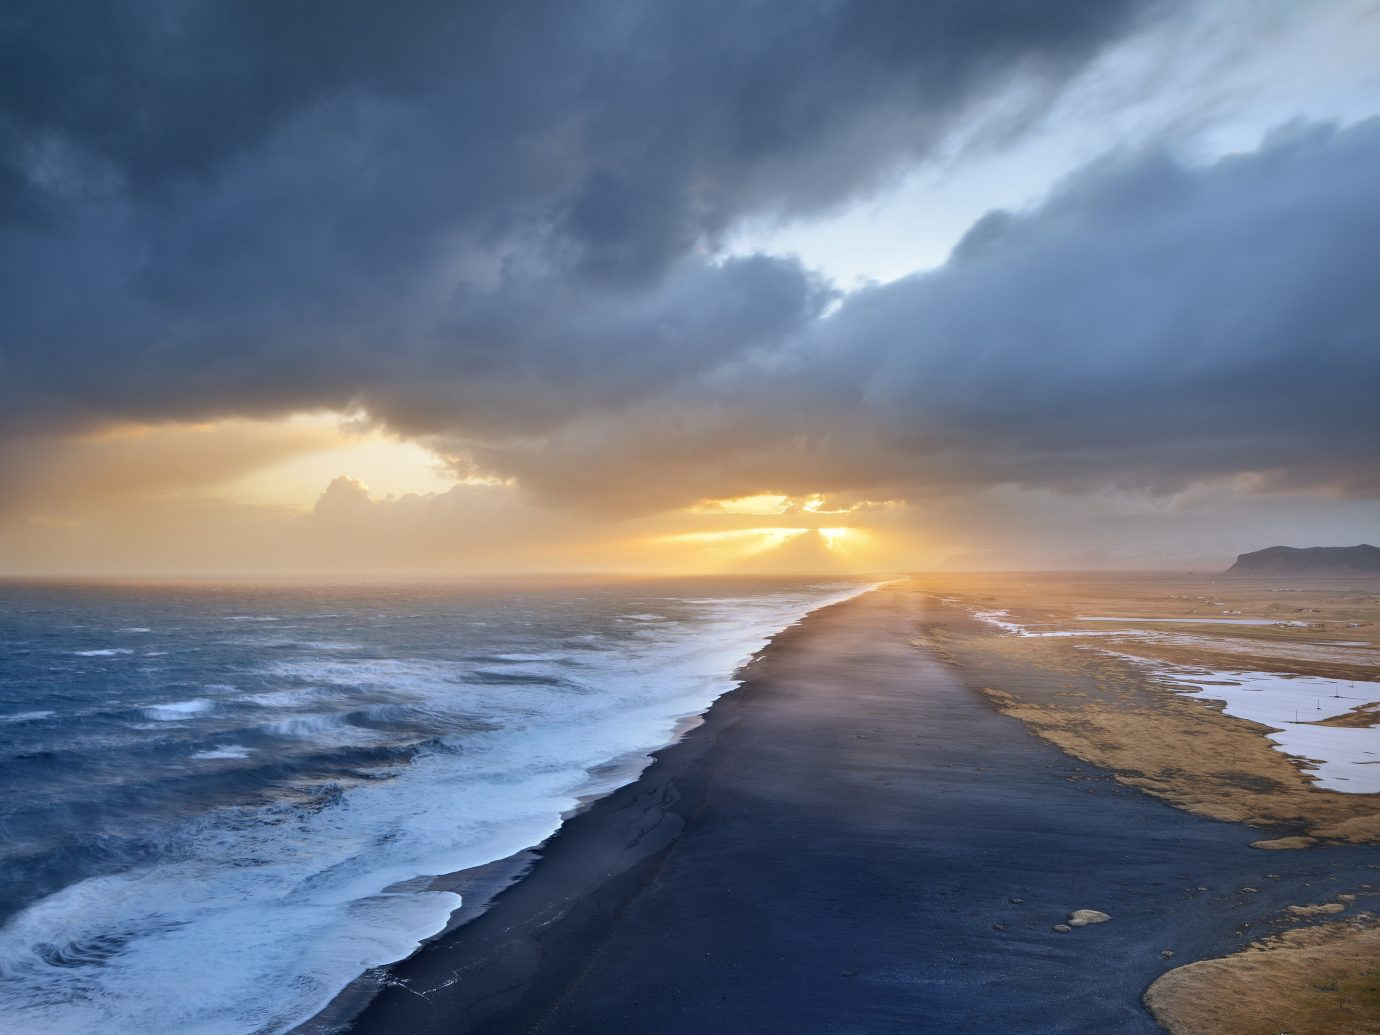 Iceland Outdoors + Adventure Road Trips sky outdoor Sea Ocean Coast shore Nature cloud horizon atmospheric phenomenon wind wave sunrise wave clouds weather Sunset dawn morning sunlight Beach dusk reflection evening Sun cape bay cloudy rock day